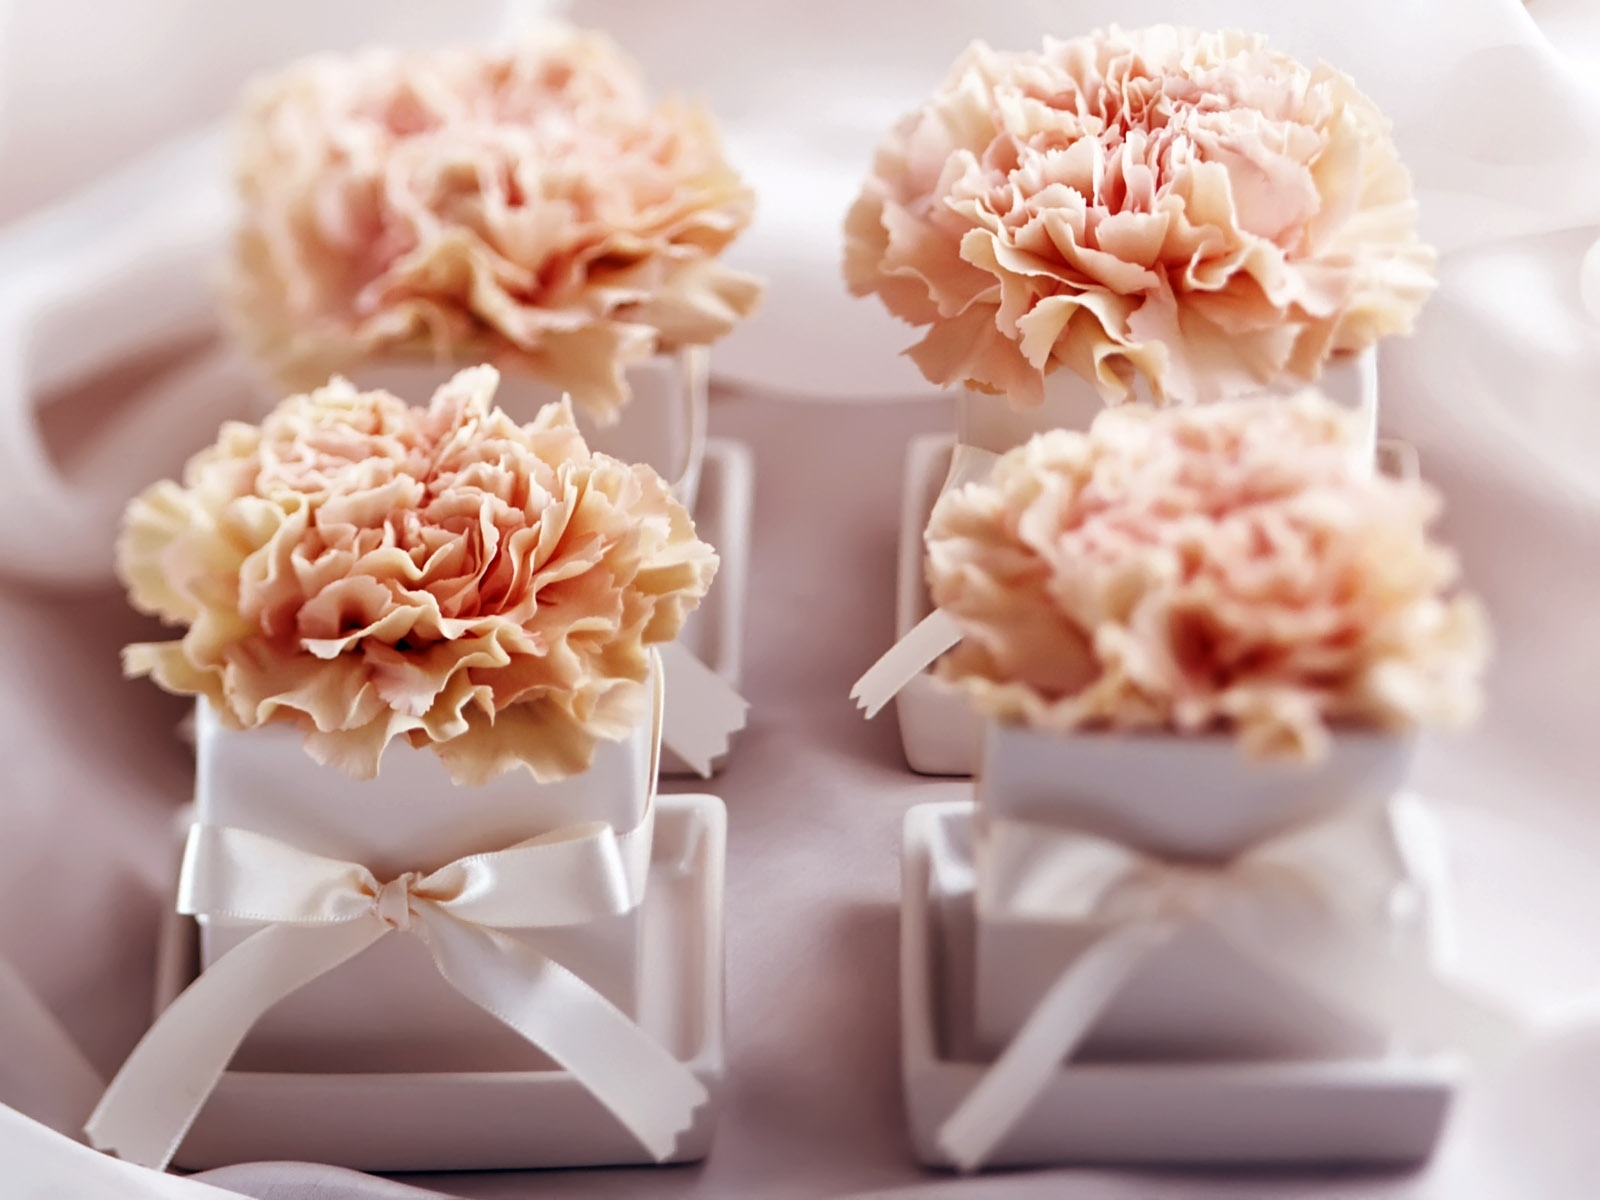 Carnation flowers 3138